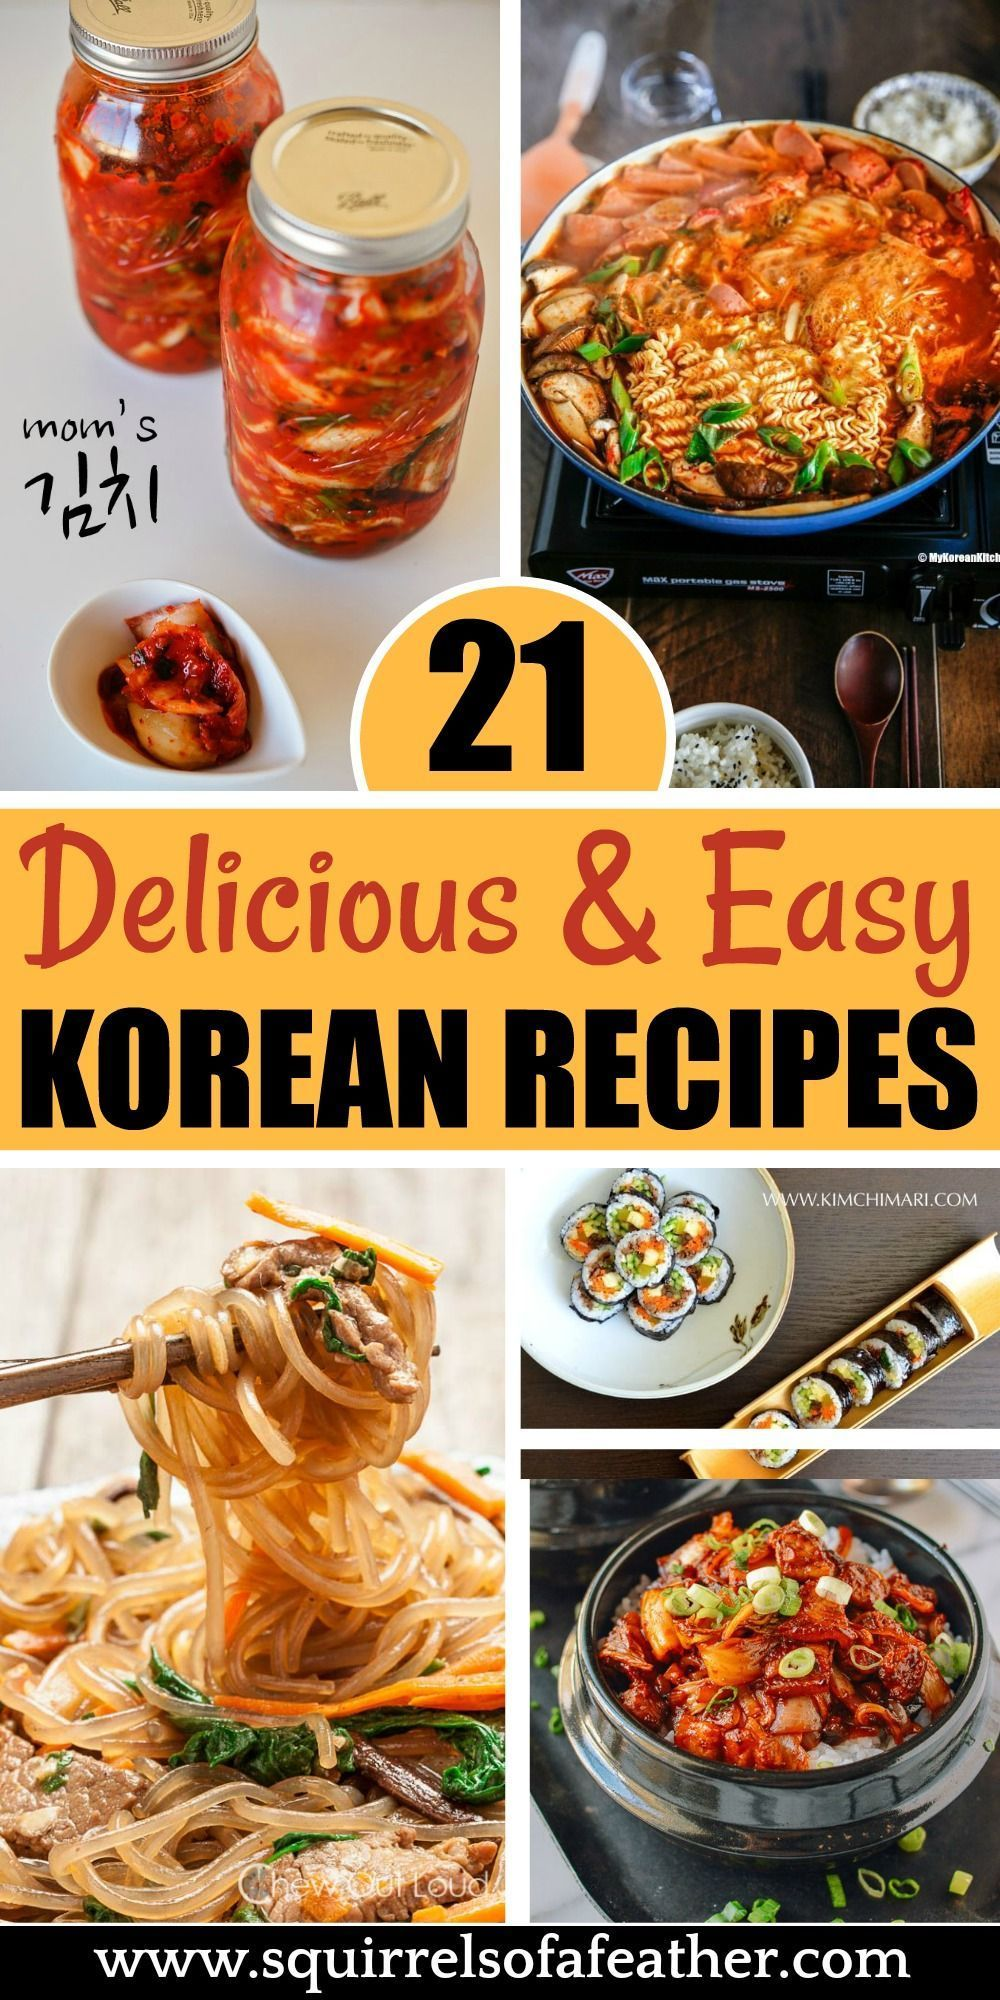 20 Tasty Korean Recipes That Anyone Can Make at Home